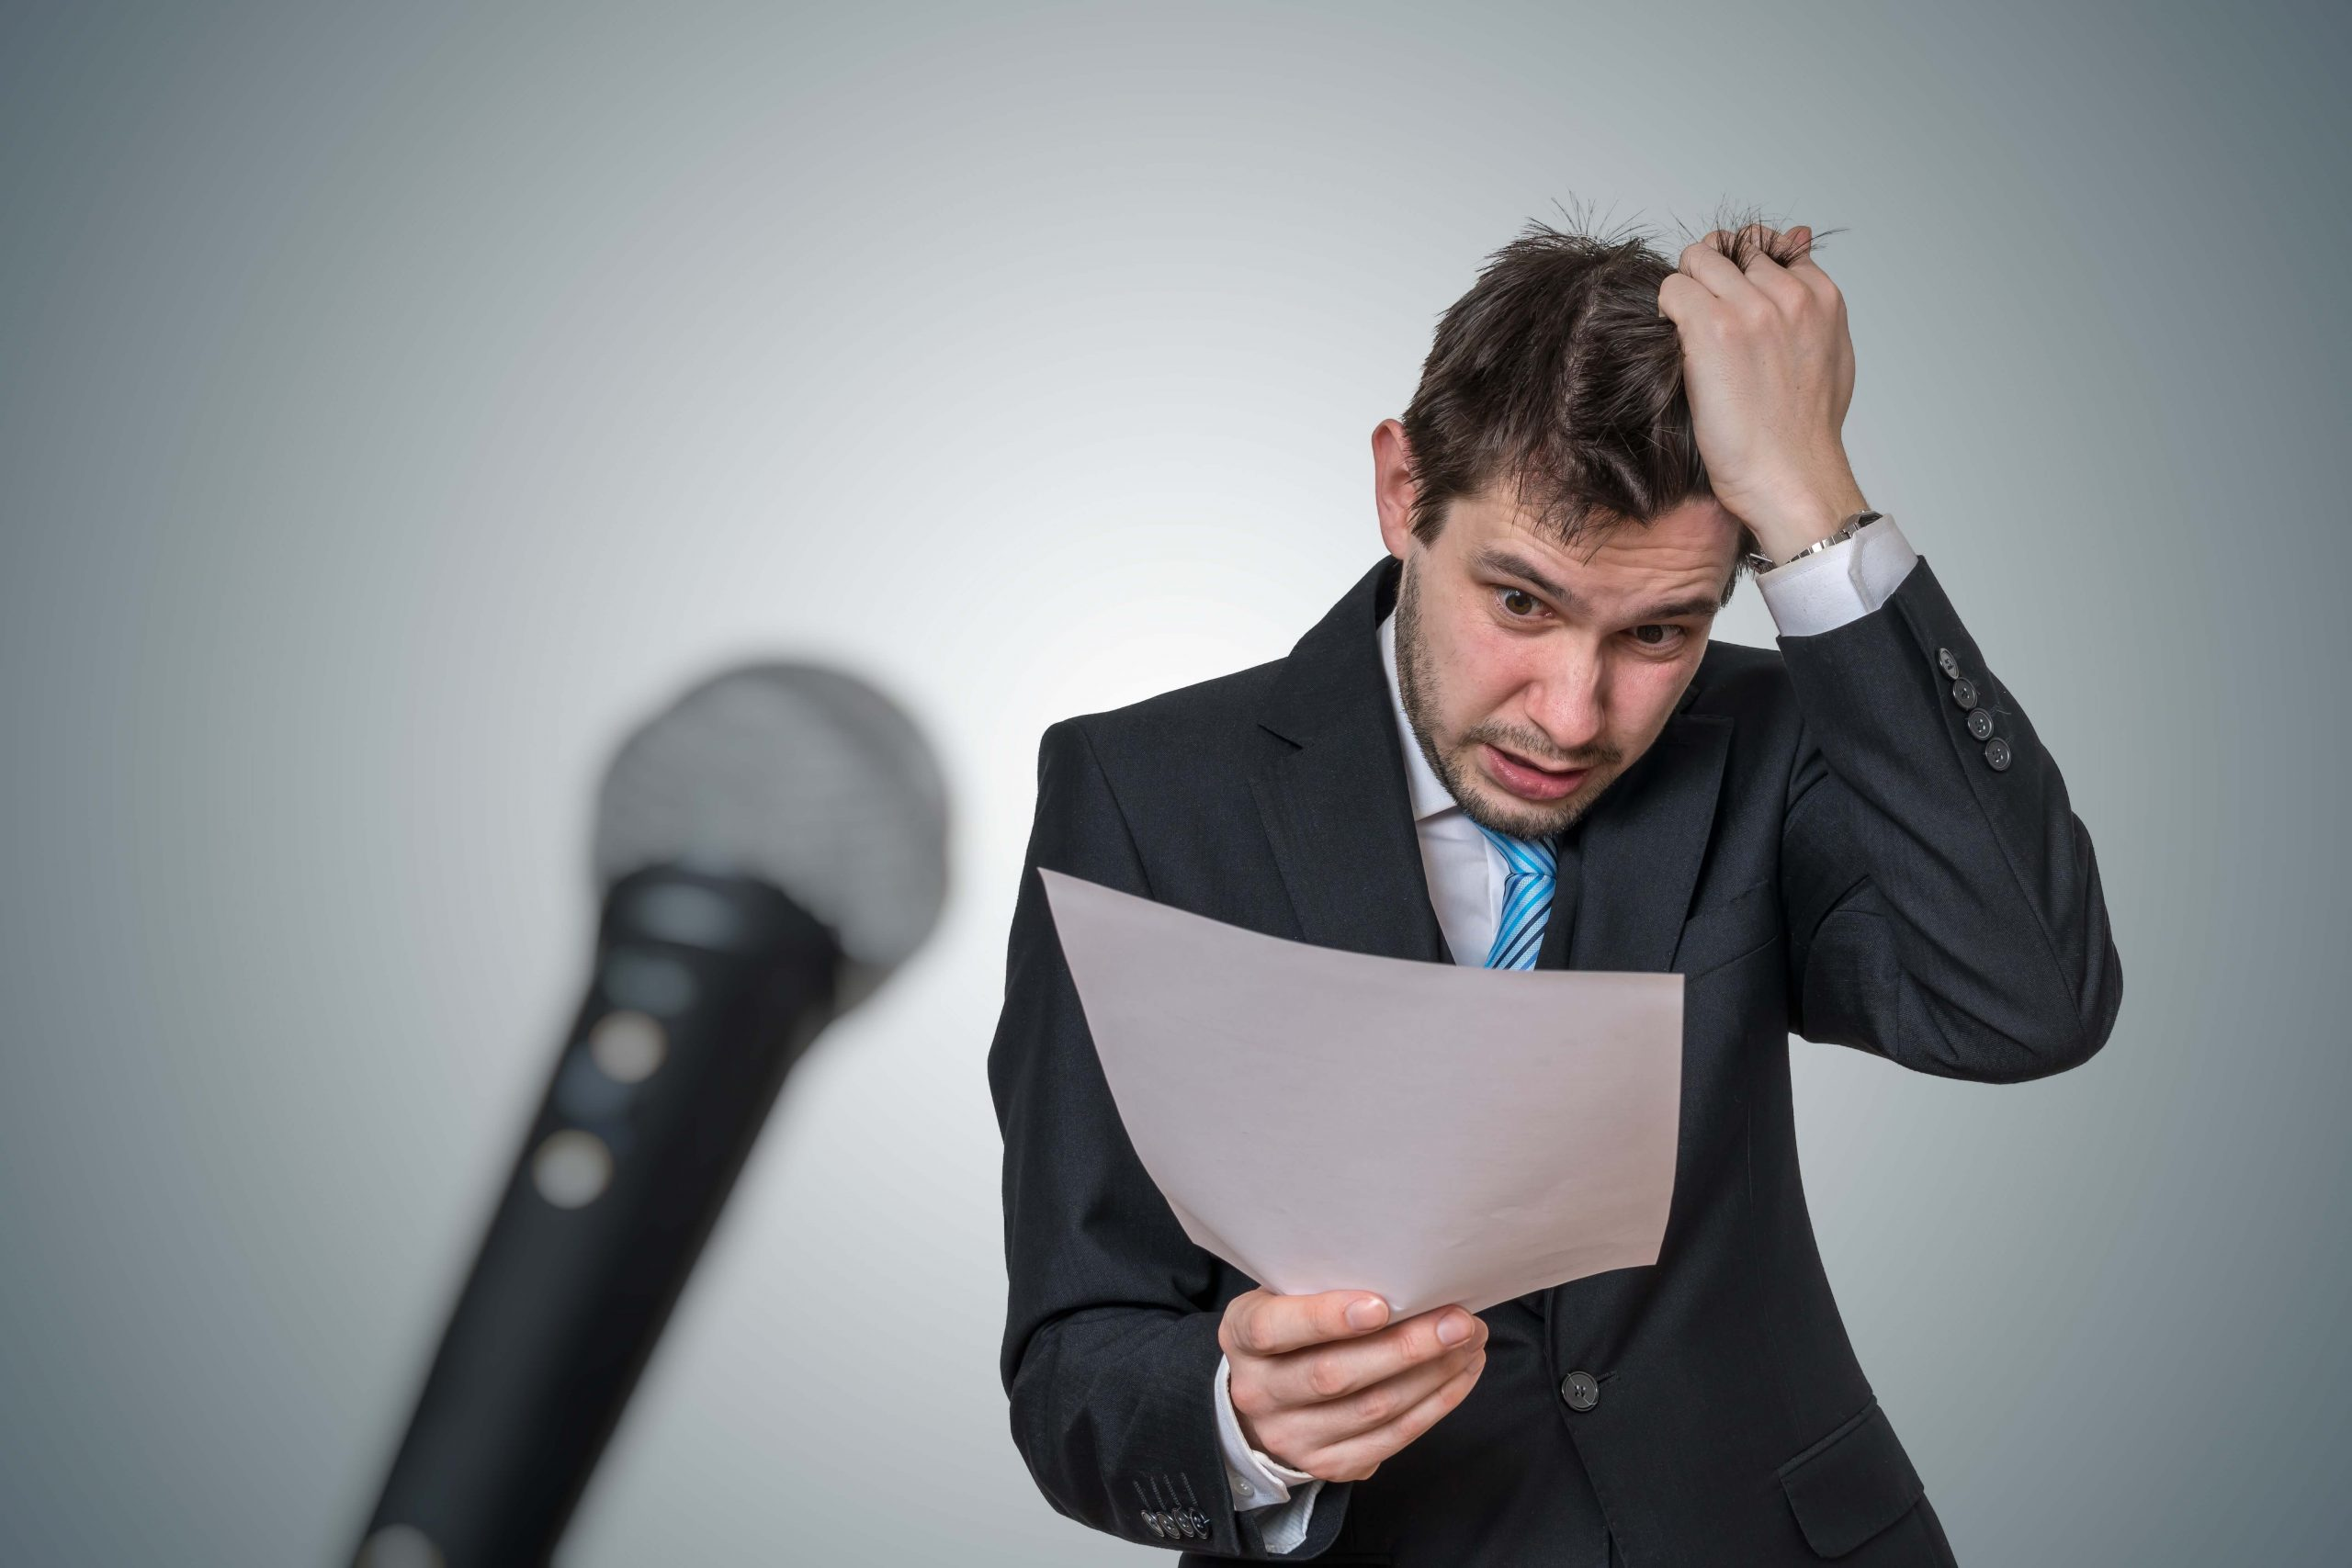 Top Tips to Get Rid of Public Speaking Anxiety